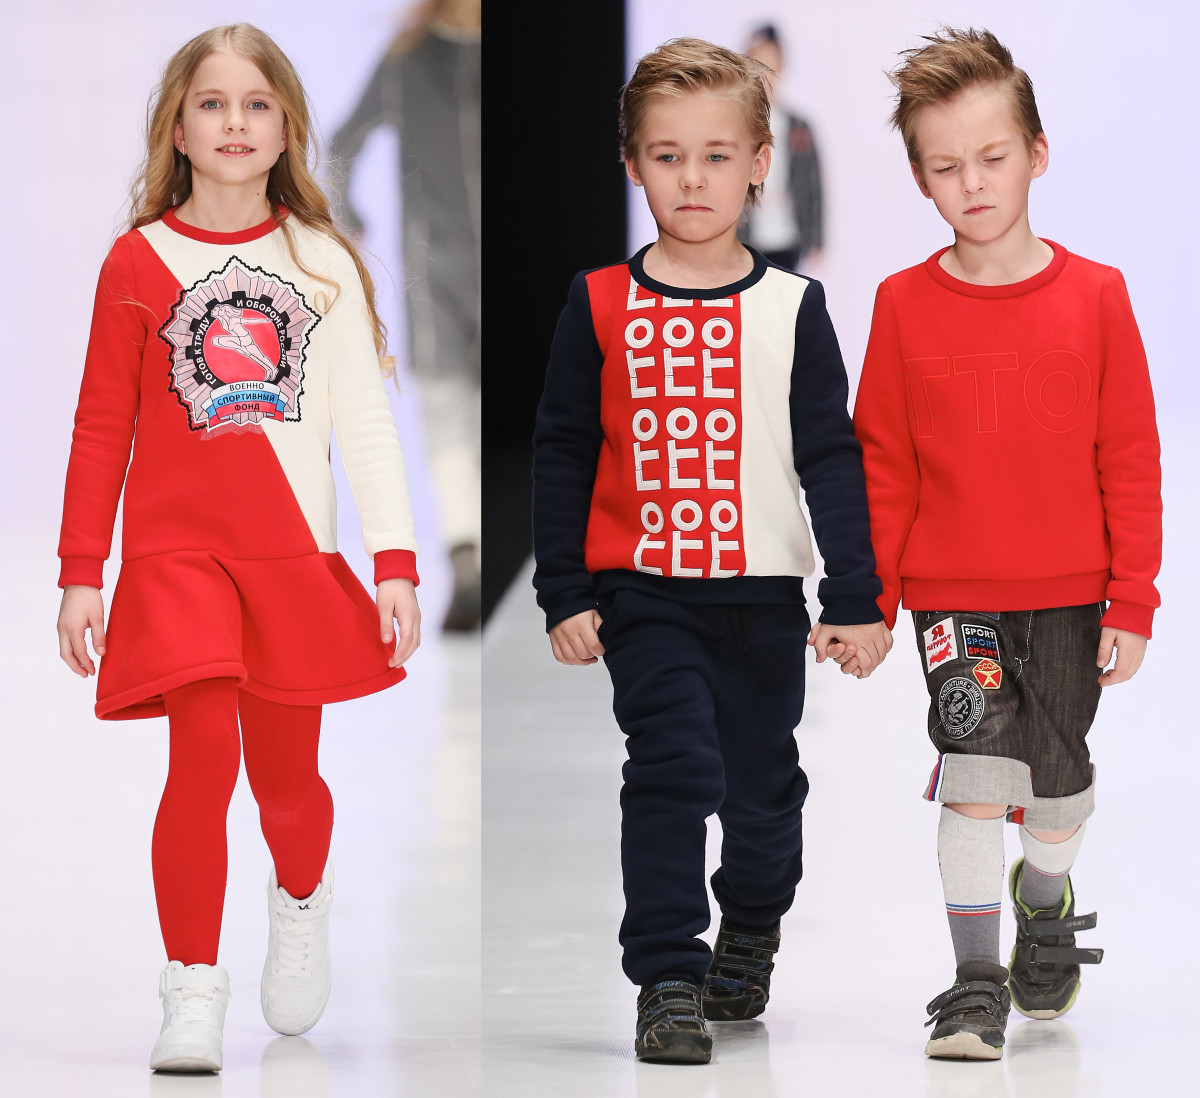 Patriotic childrenswear from the Alliance of Russian Art-Engineers collective show. Photos: Mercedes Benz Fashion Week Russia.